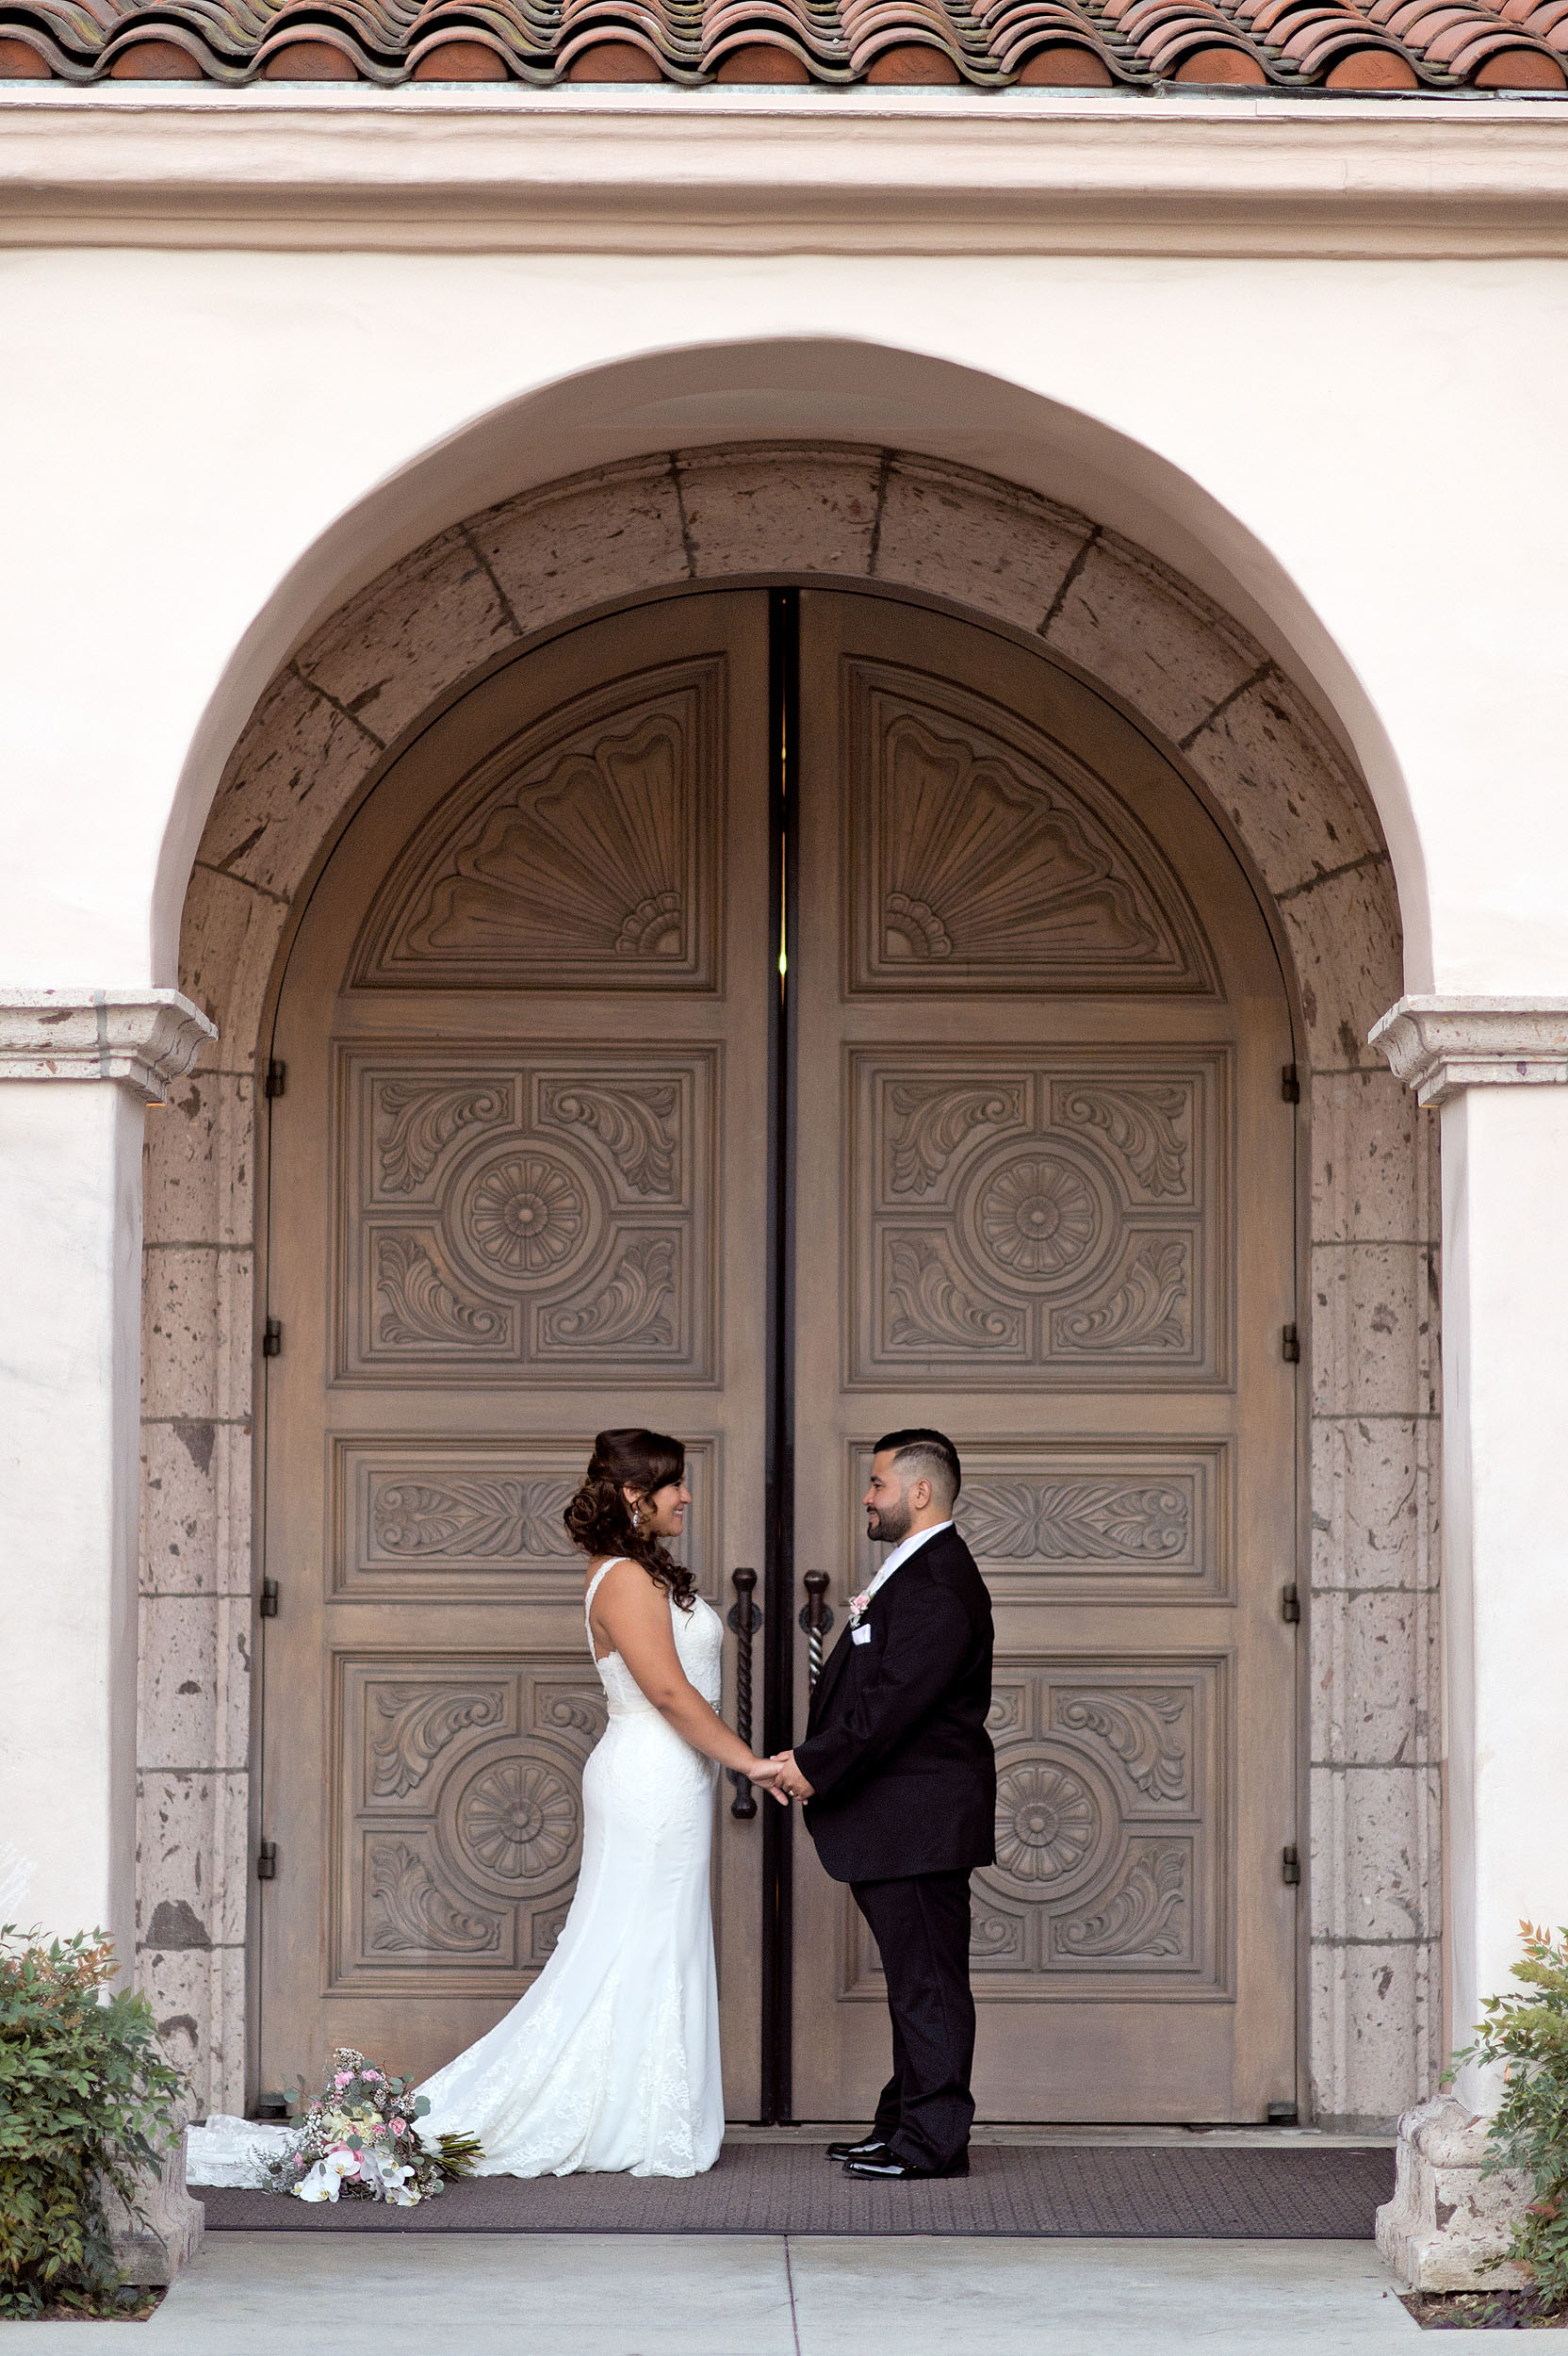 Bride and groom facing each other in front of large arched double doorway at St. Denis Catholic Church in Diamond Bar.